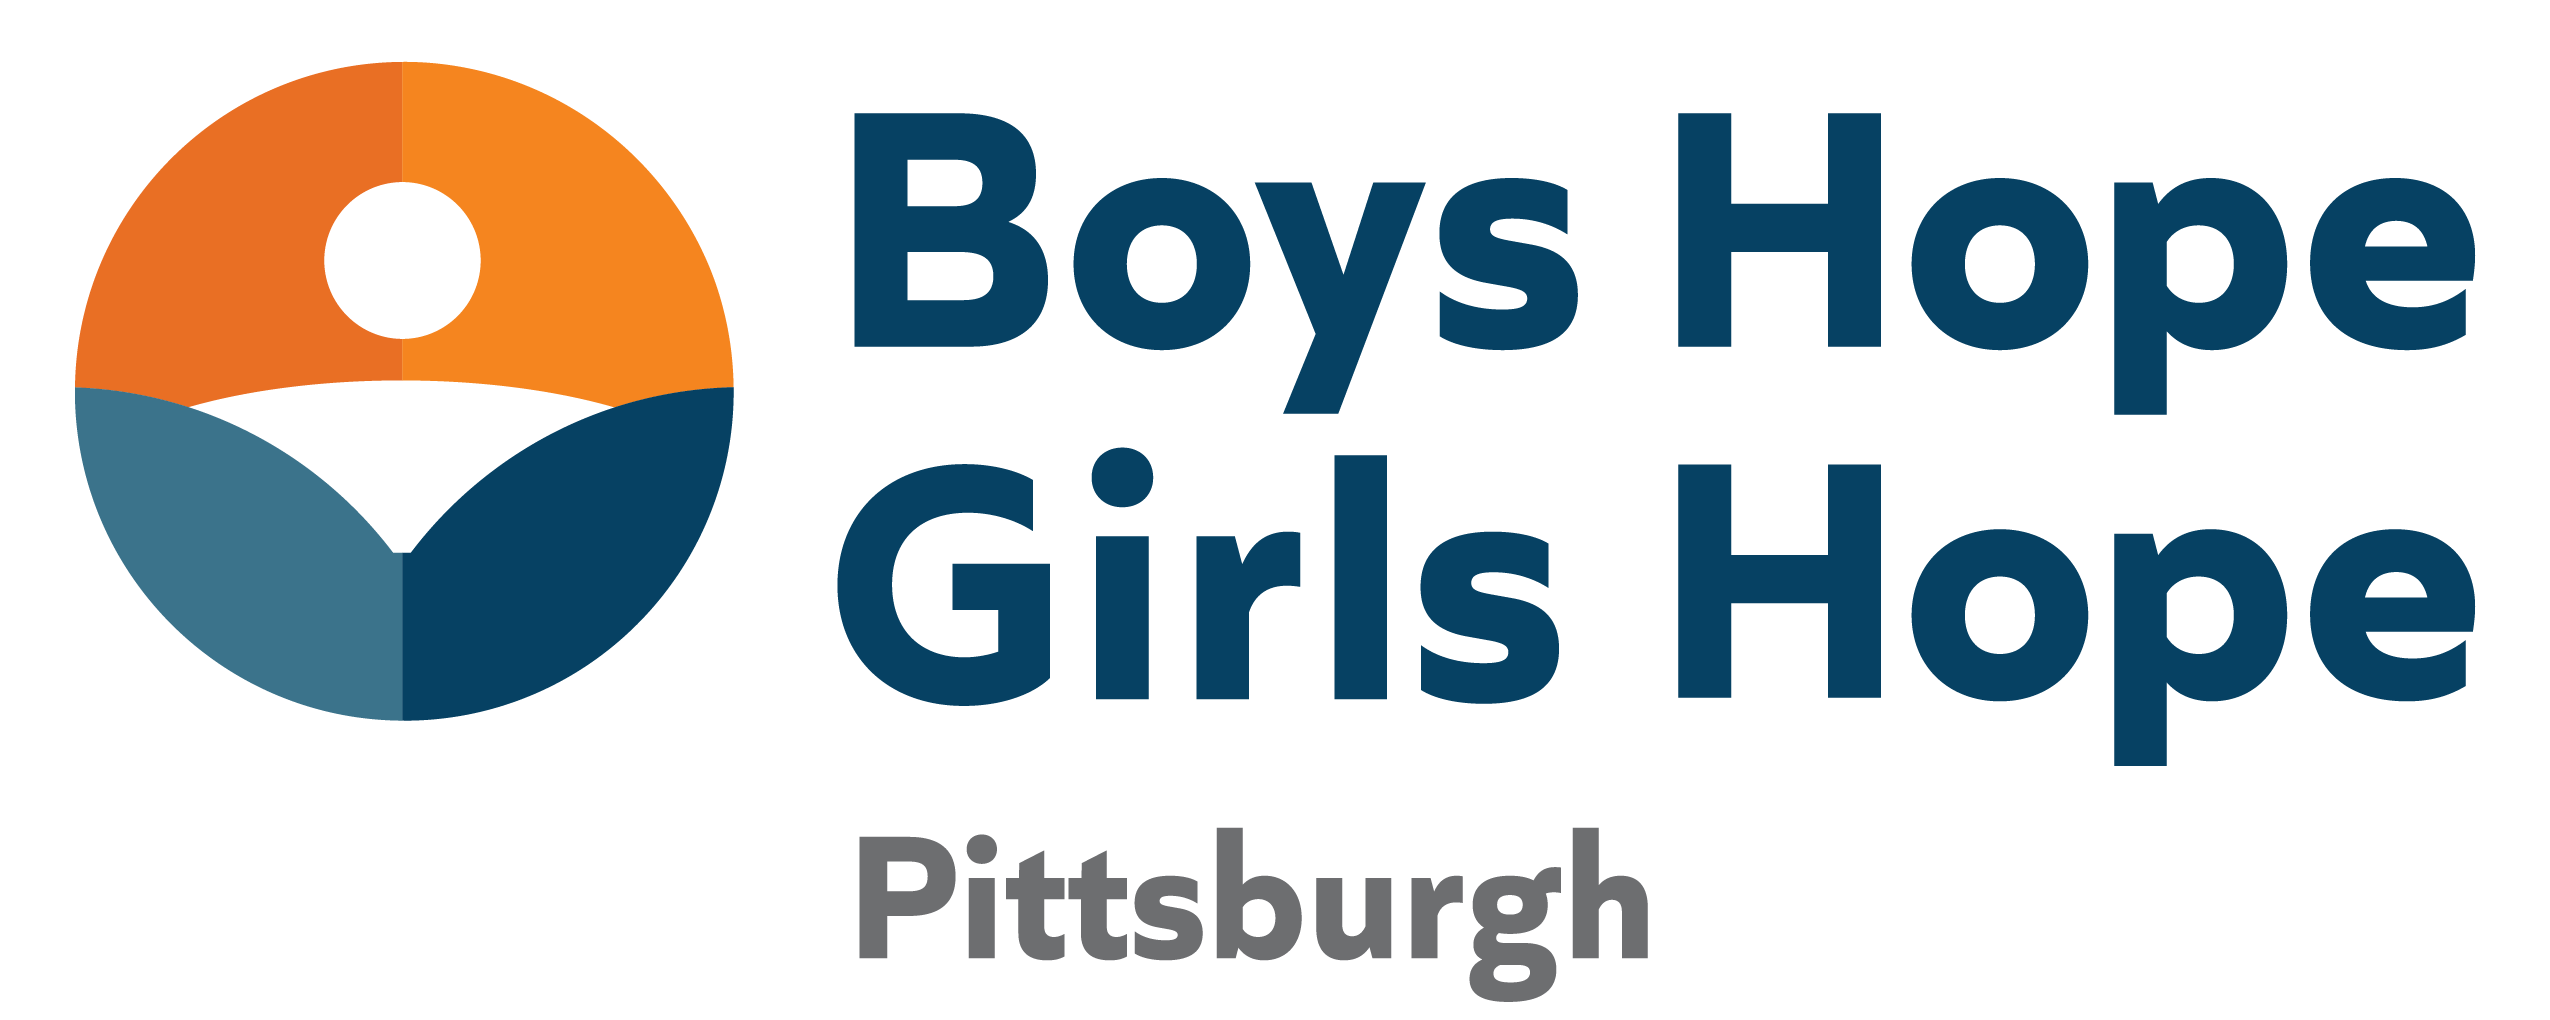 Boys Hope Girls Hope of Pittsburgh